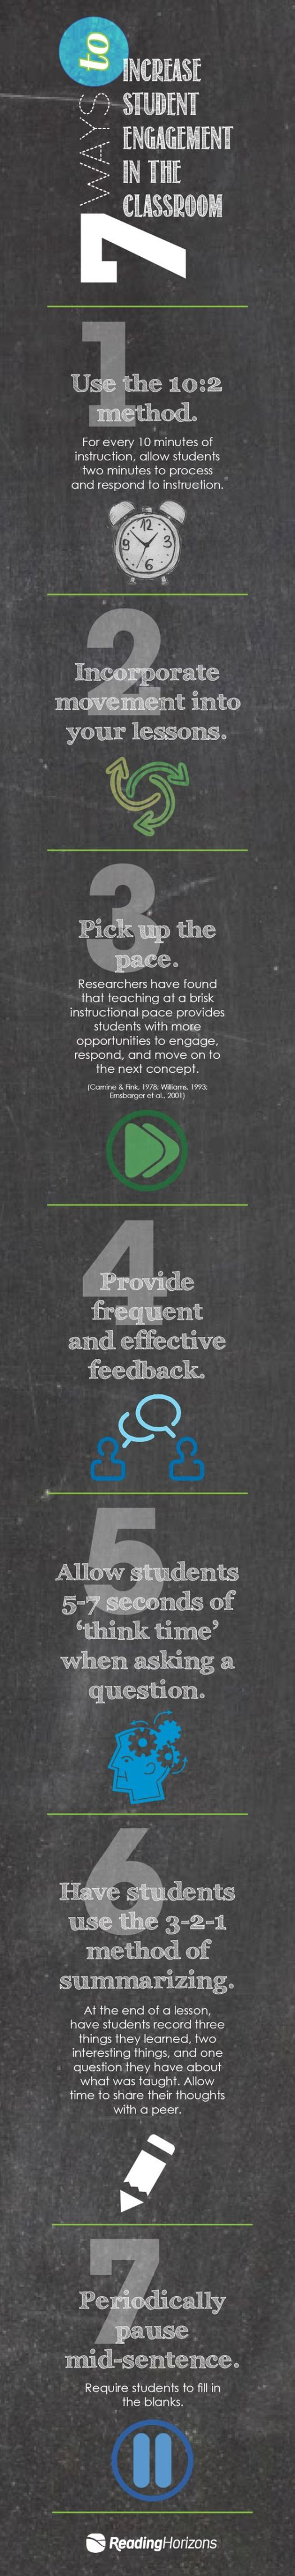 Infographic 7 ways to increase stduent engagement in the classroom